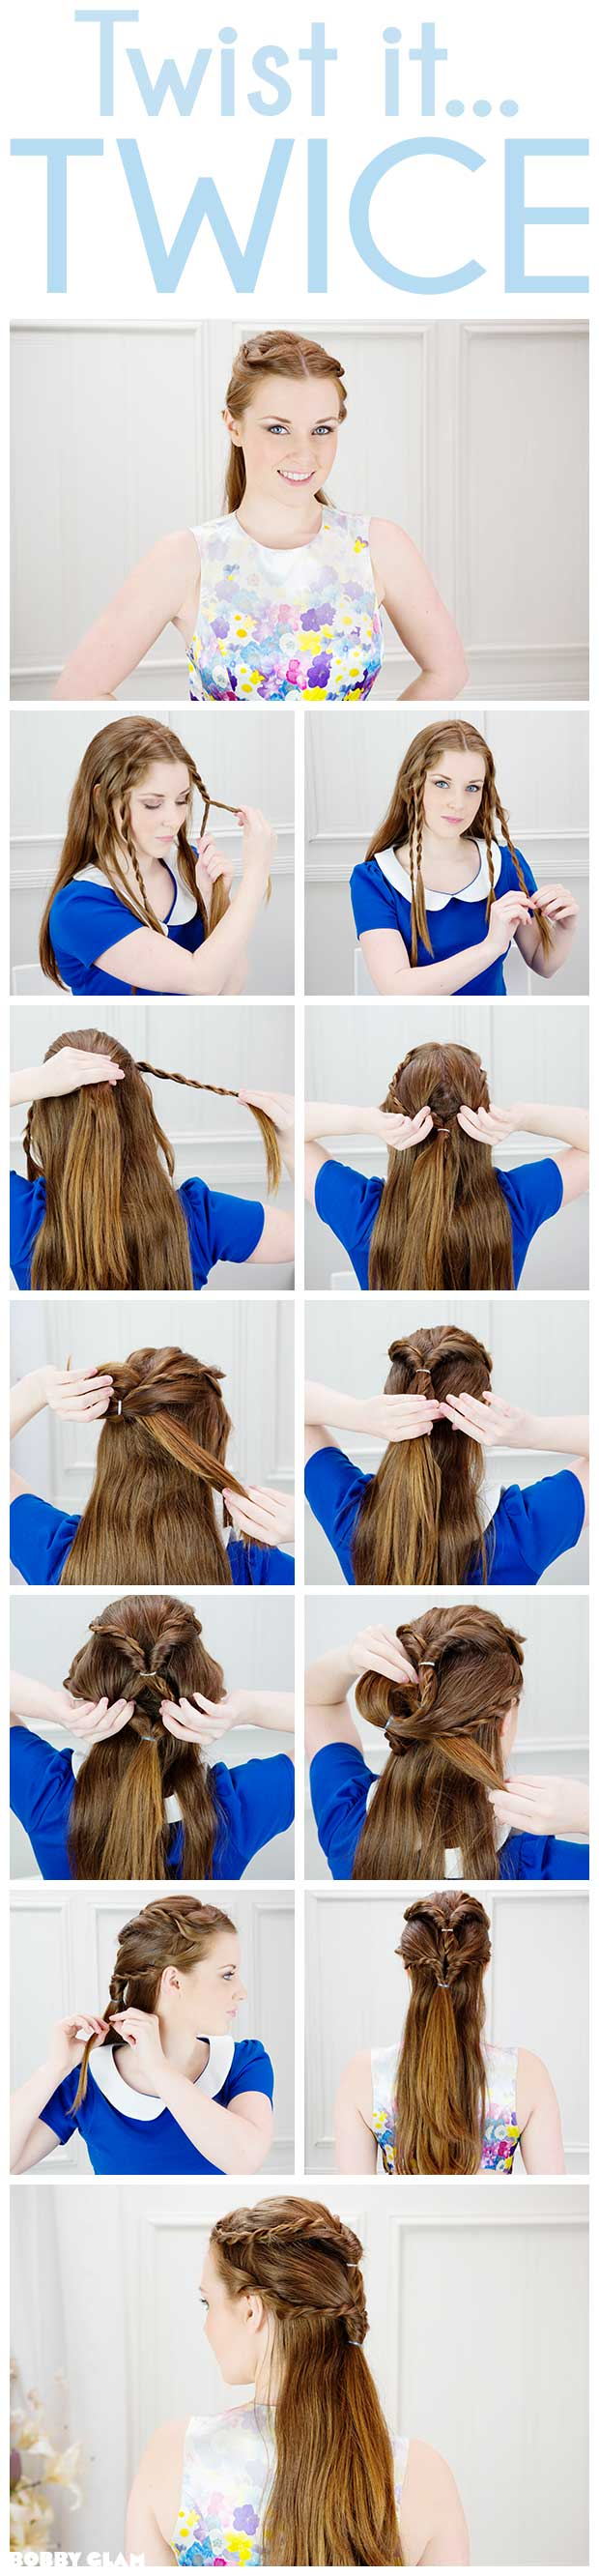 My twist it twice hair tutorial creates a gorgeous style that is